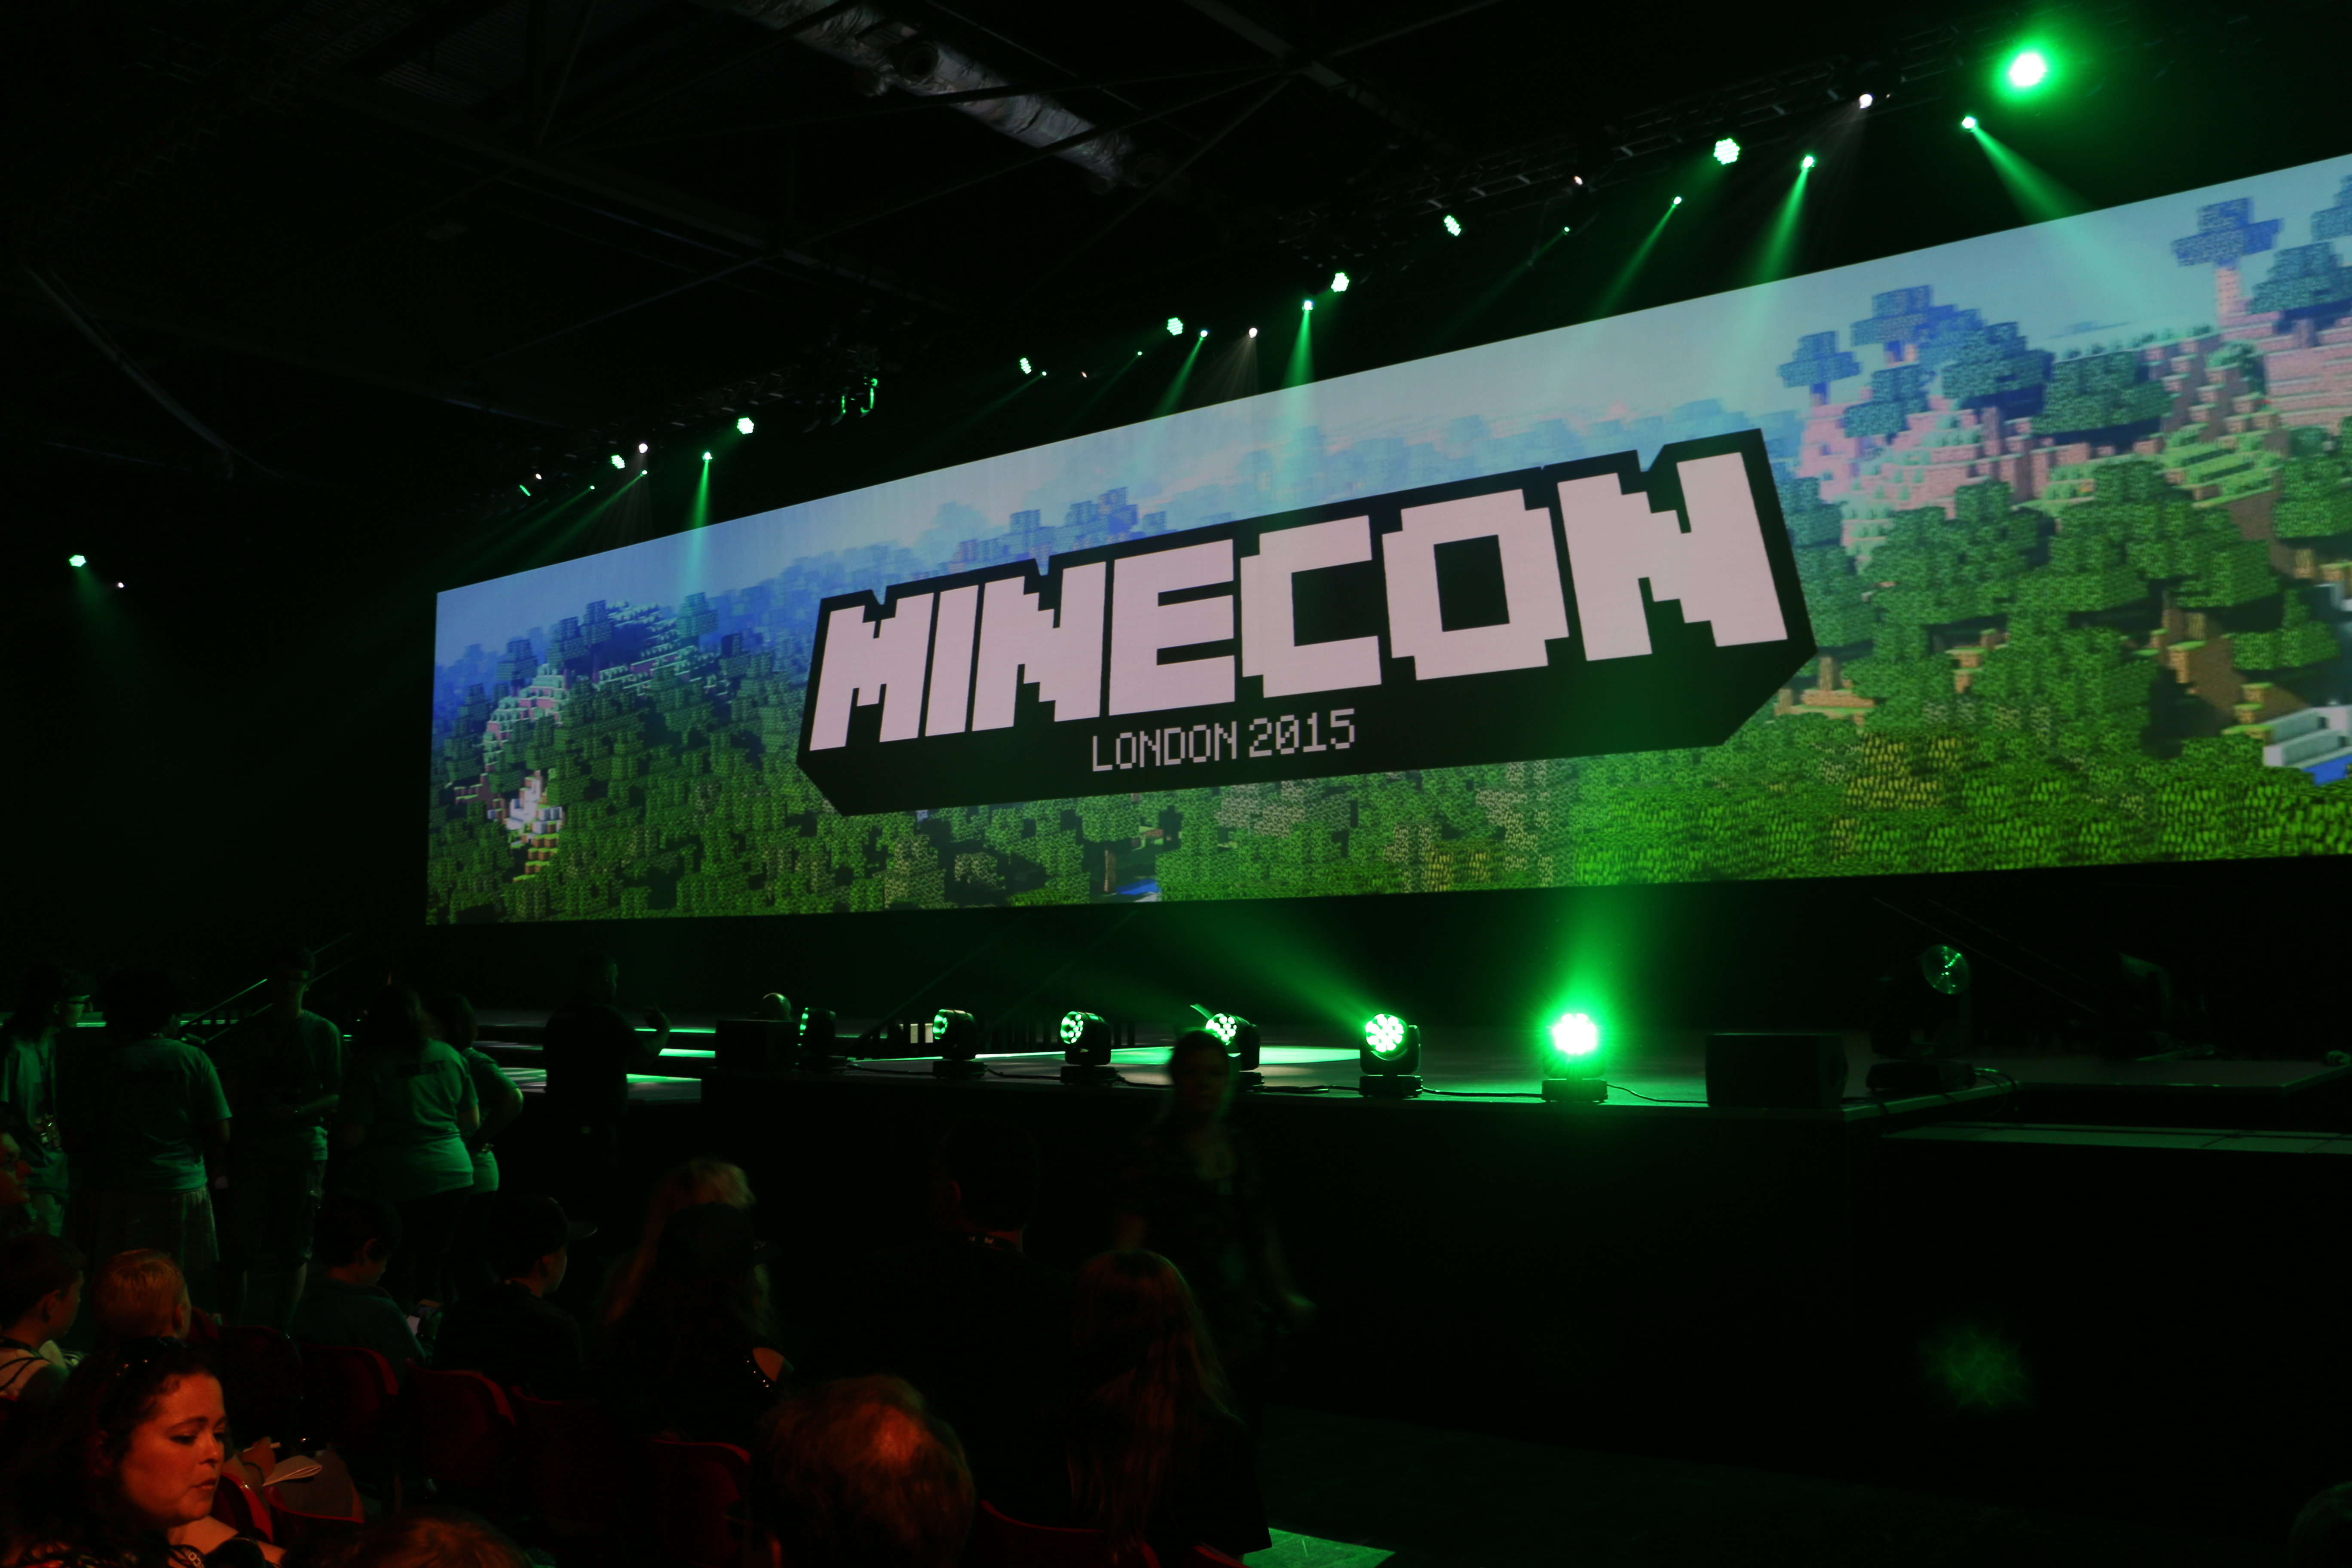 MUDD LAW ATTENDS MINECON Charles Mudd attended Minecon 2015 in London, England over the 2015 July 4 Weekend.  Still presented by Mojang with its exceptional Brand Director Lydia Winters (@LydiaWinters) […]